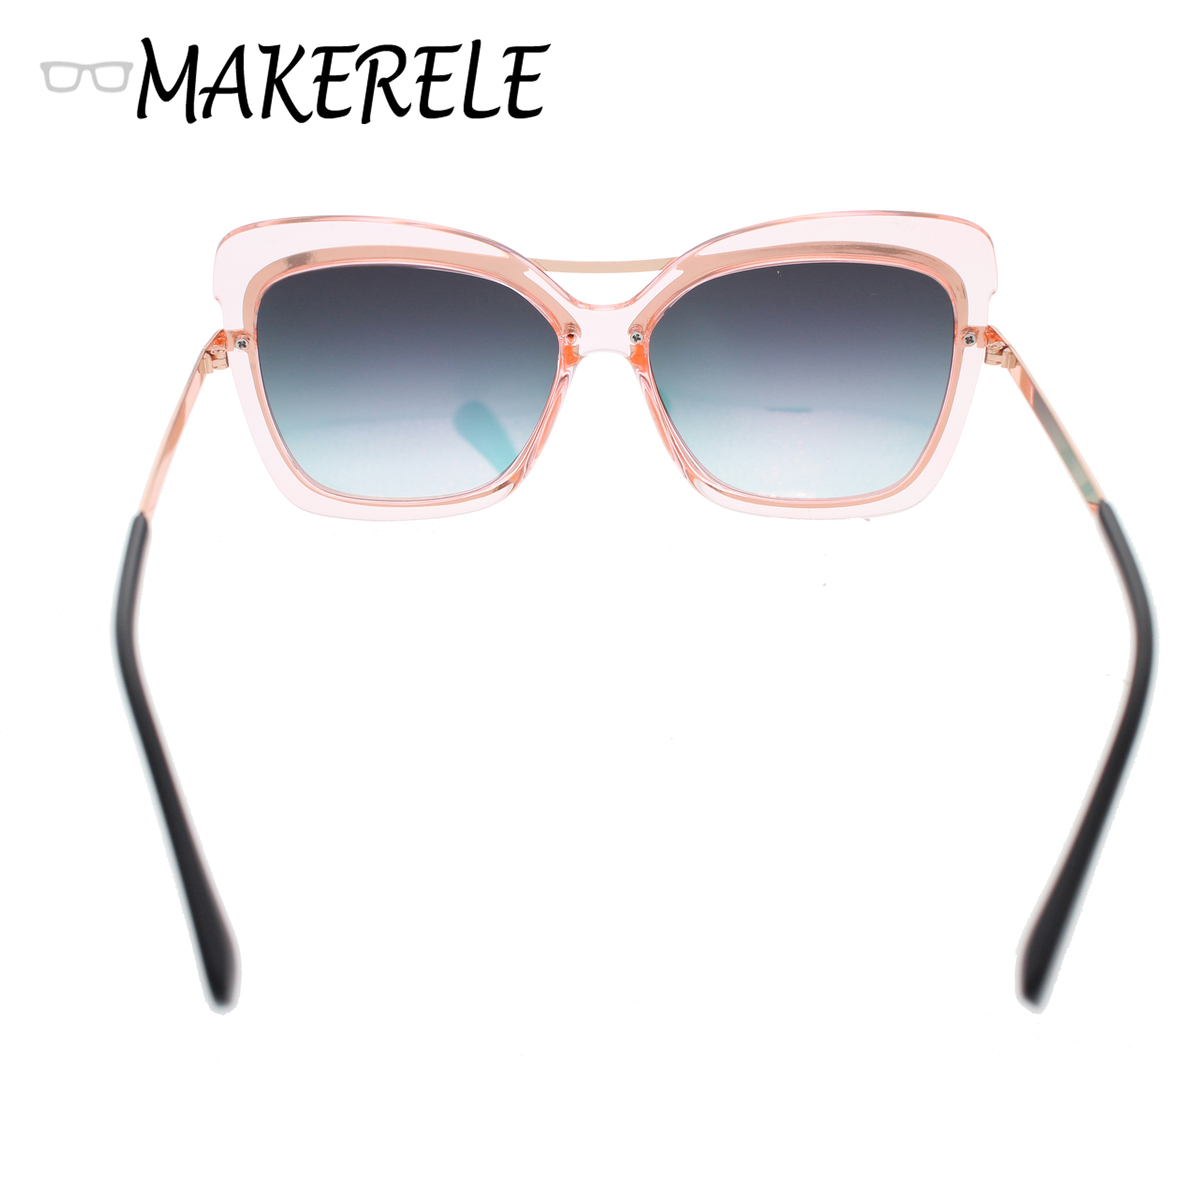 23e659424318b7 Paars oceaan roze transparant womens zonnebril kat bril grote frame Classic  retro oculos de sol van zonnebril online in Paars oceaan roze transparant  womens ...